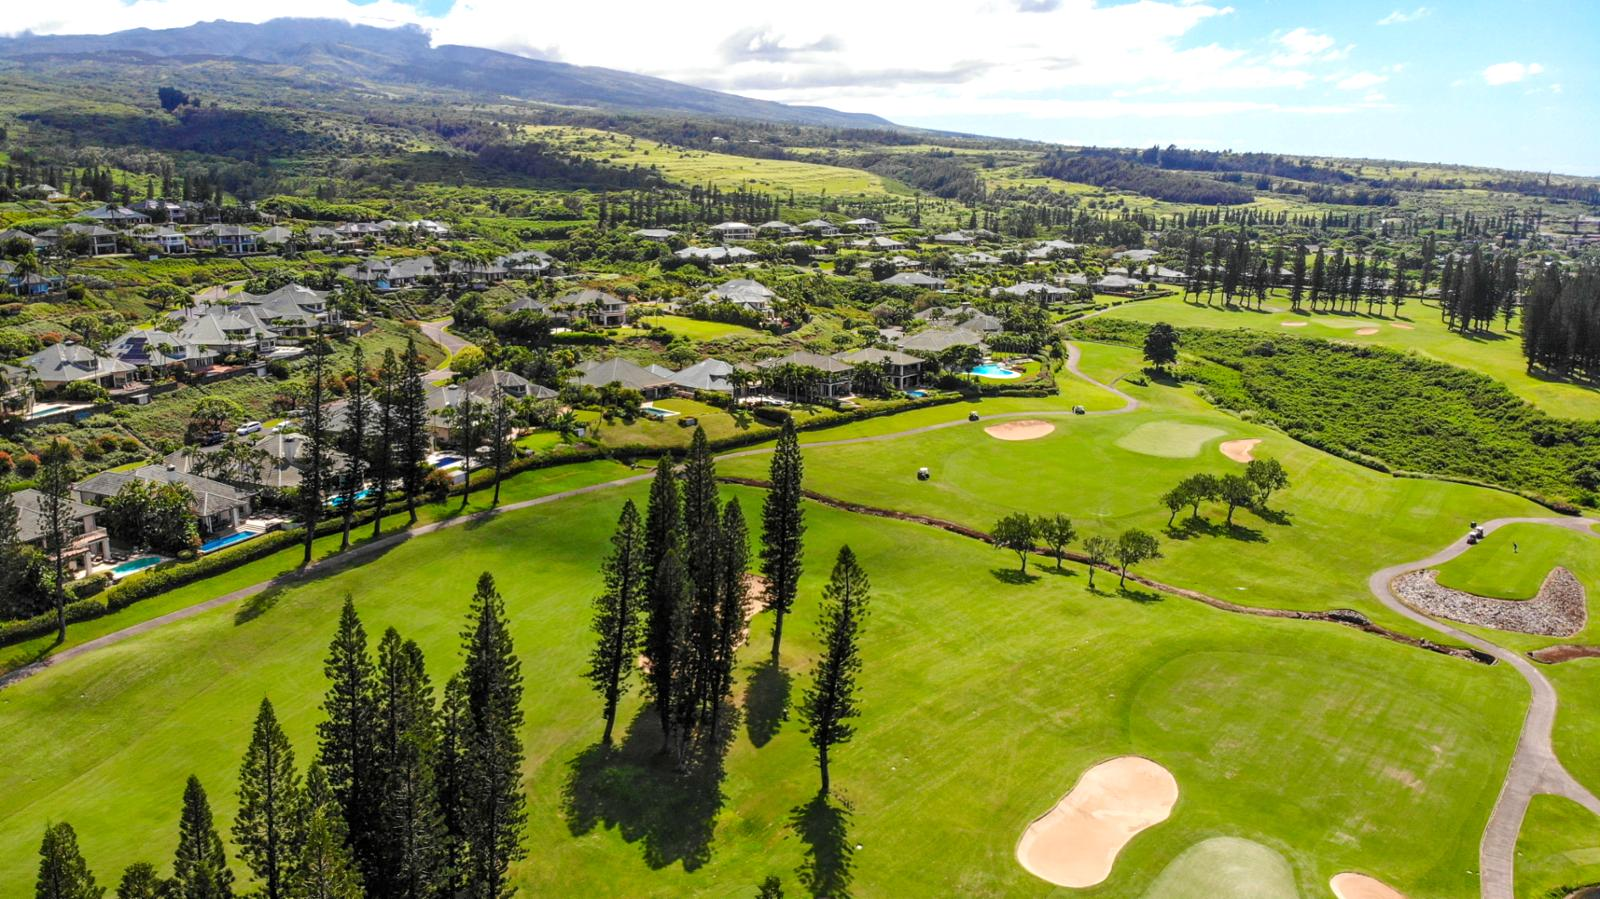 Welcome to the World Famous Kapalua Resort!